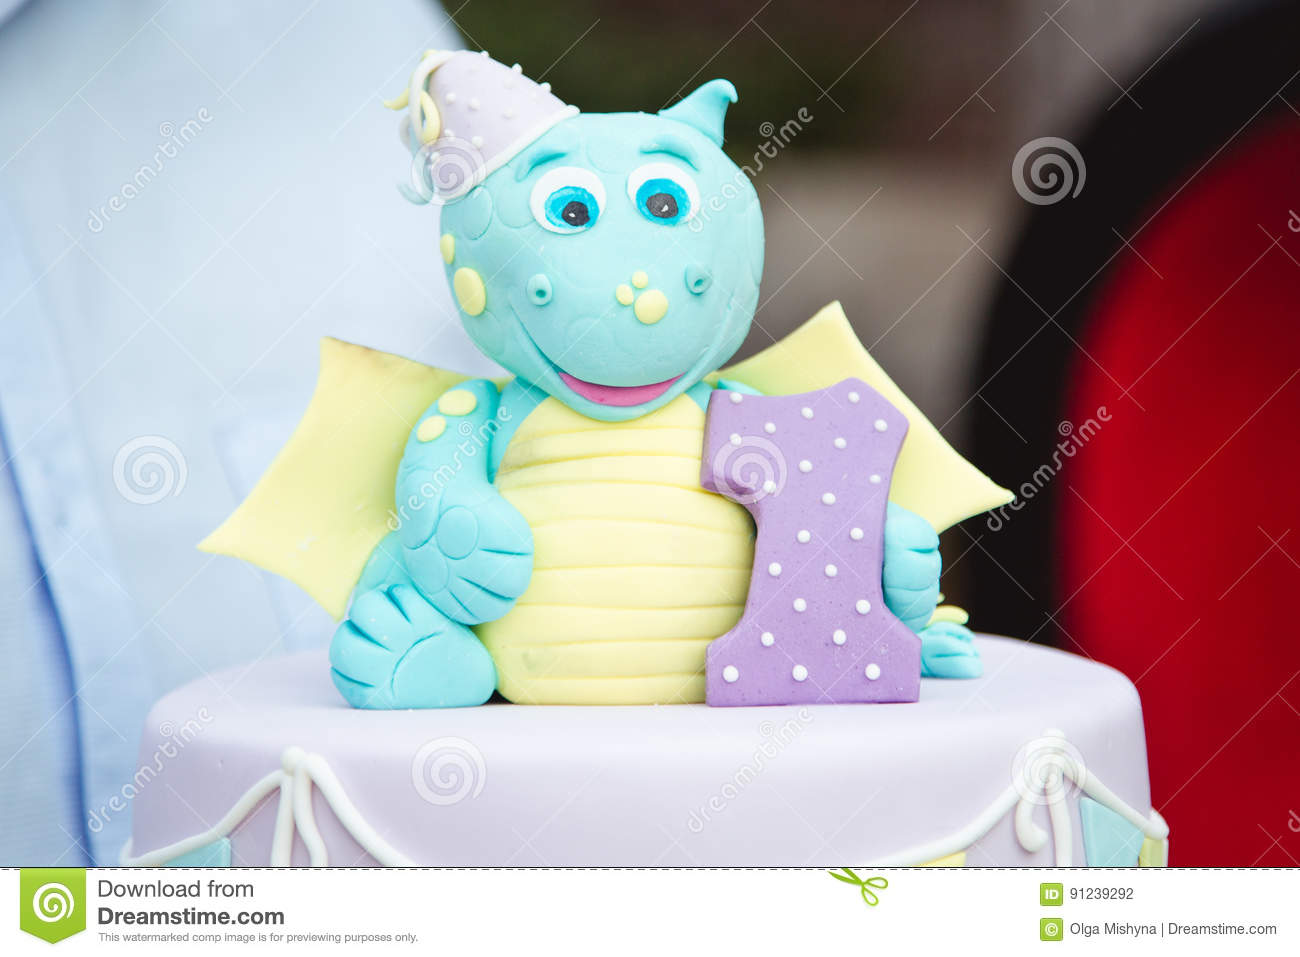 Hippo Birthday Cake Stock Photos Download 7 Images